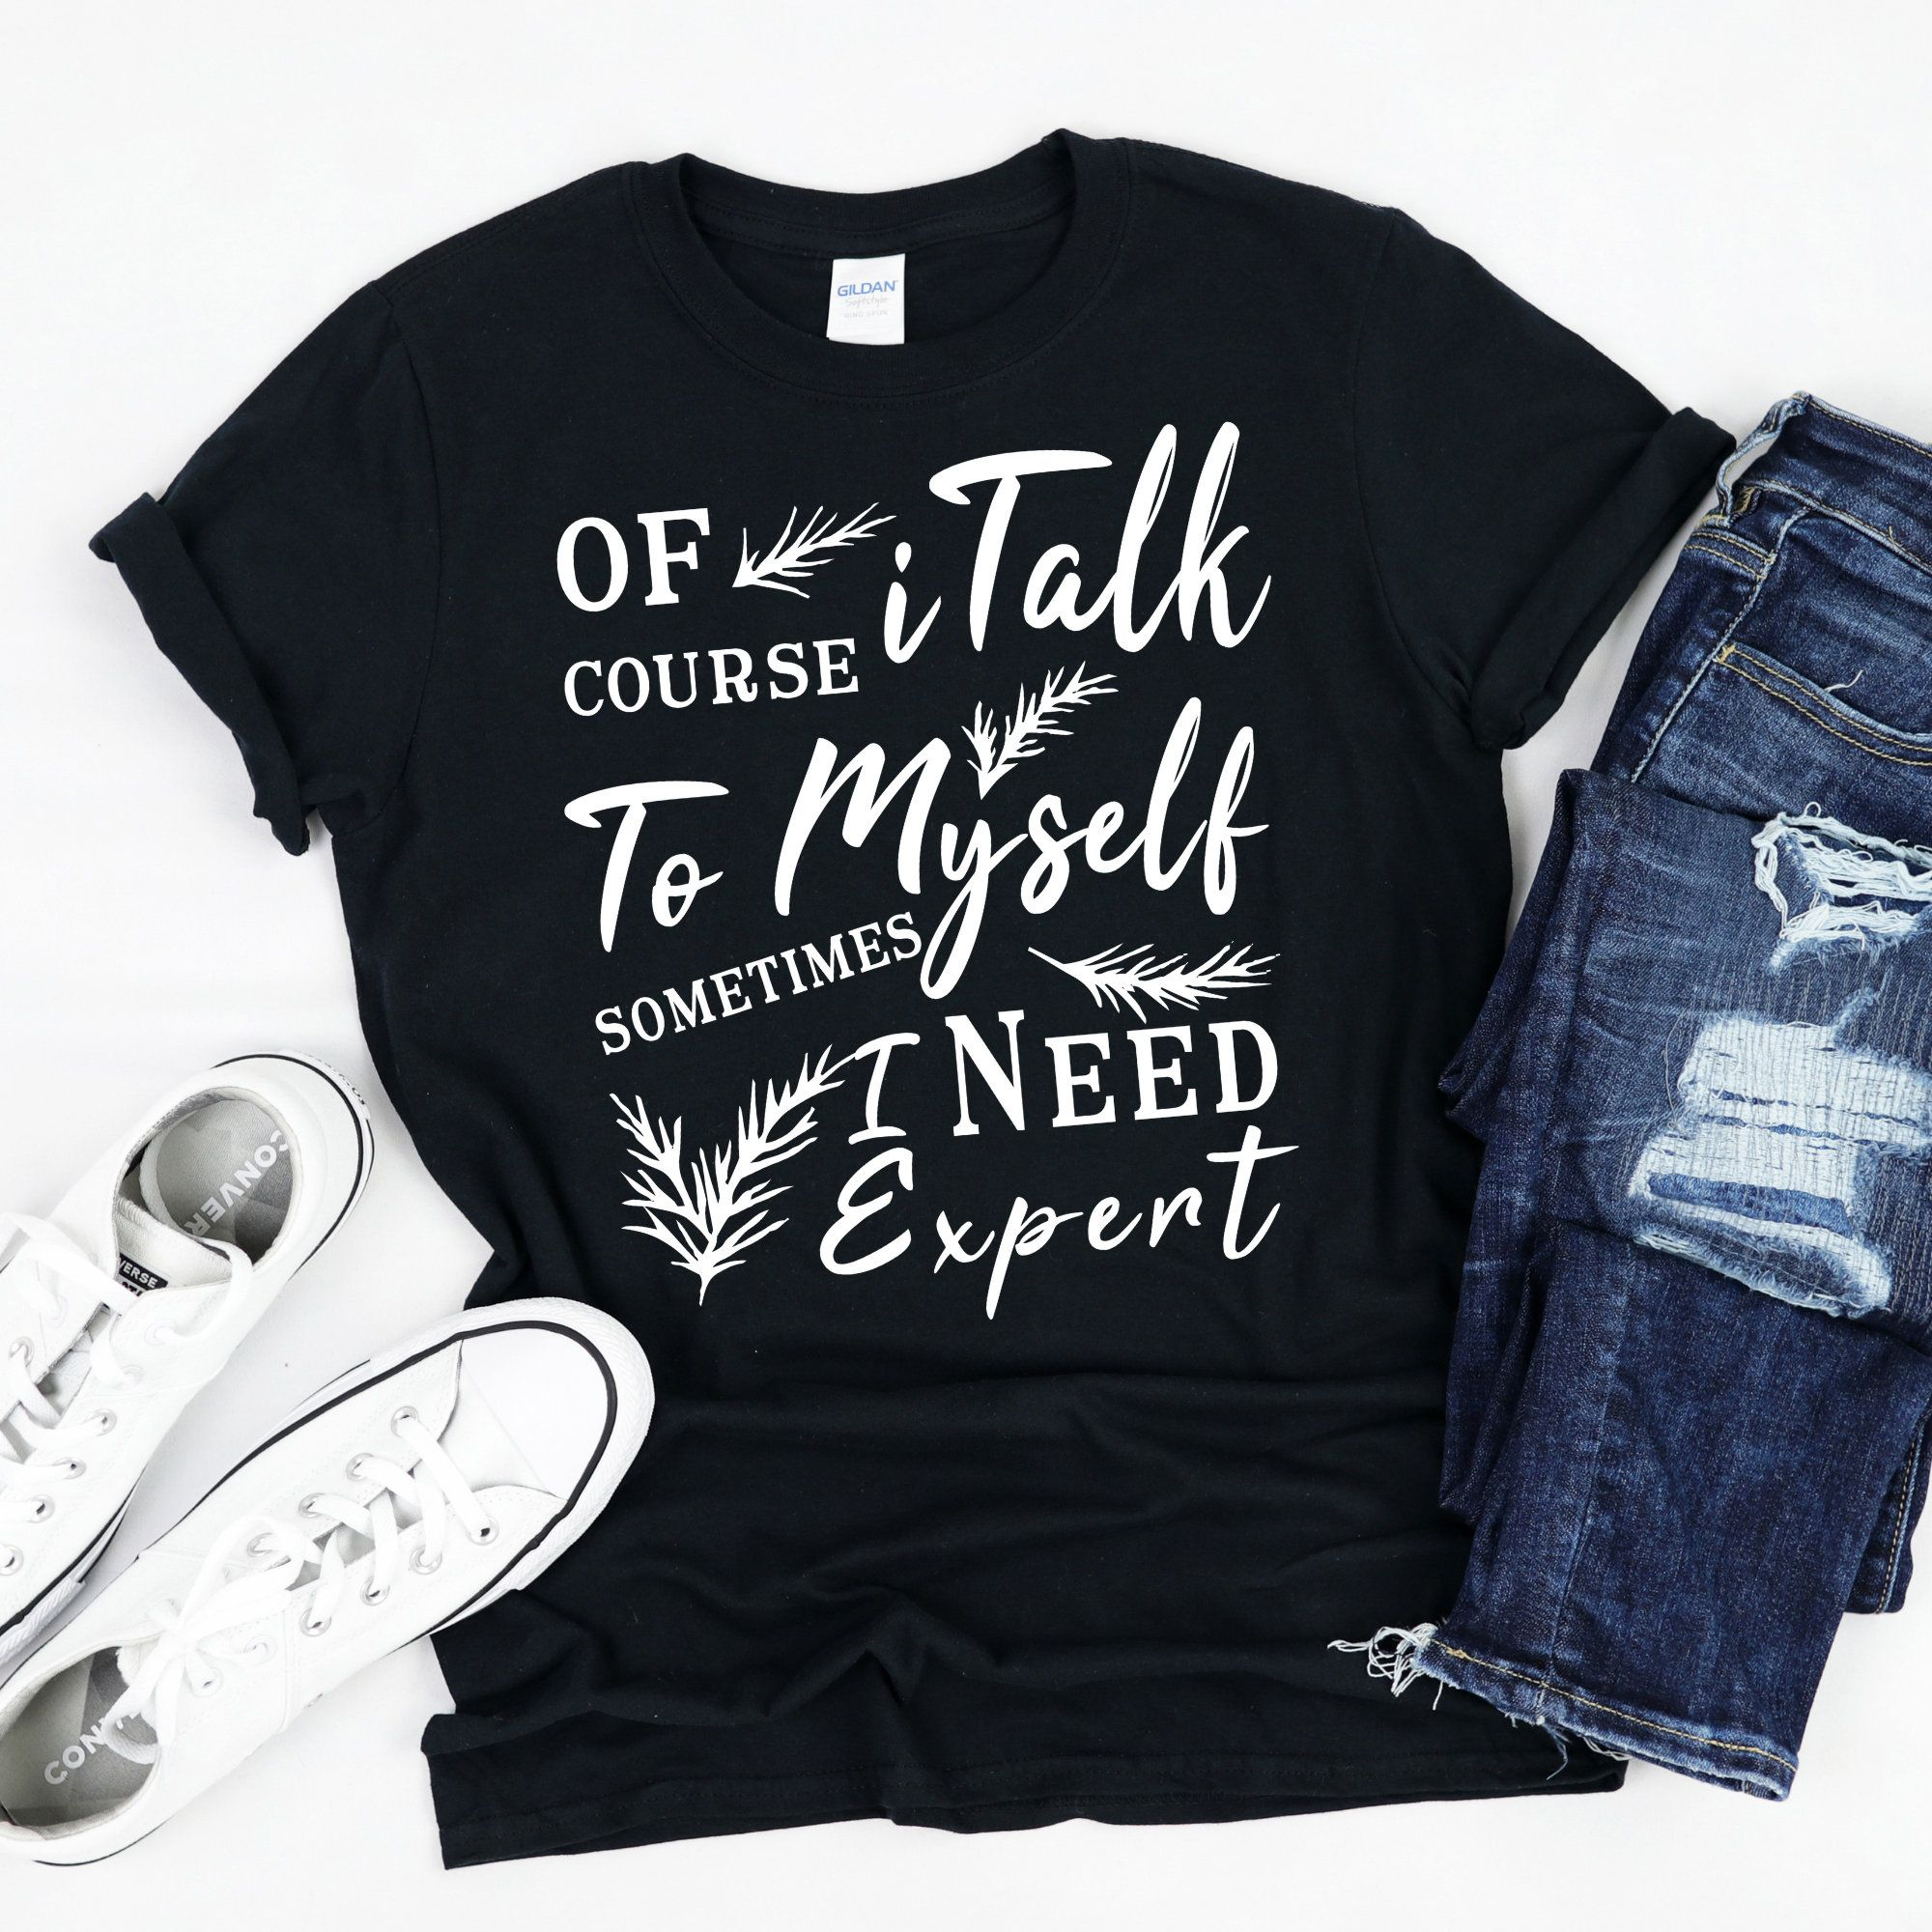 Funny T Shirt Men, Funny Gifts for Him, Cool T Shirt, Sarcastic TShirt, Funny Mens Shirt, Of Course I Talk to Myself Need Expert Adviceshirt